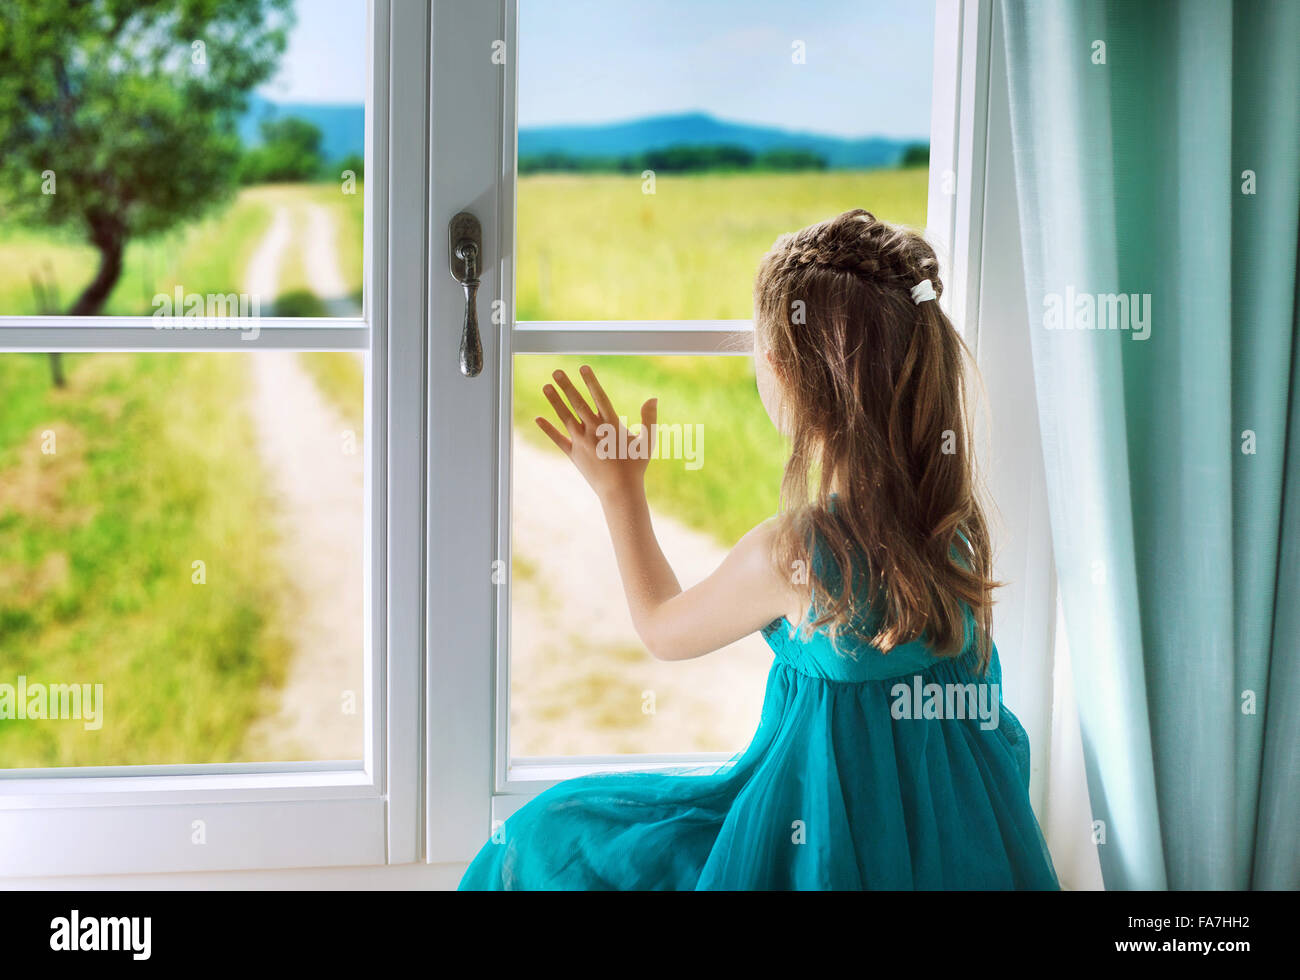 Little sad girl looking through window